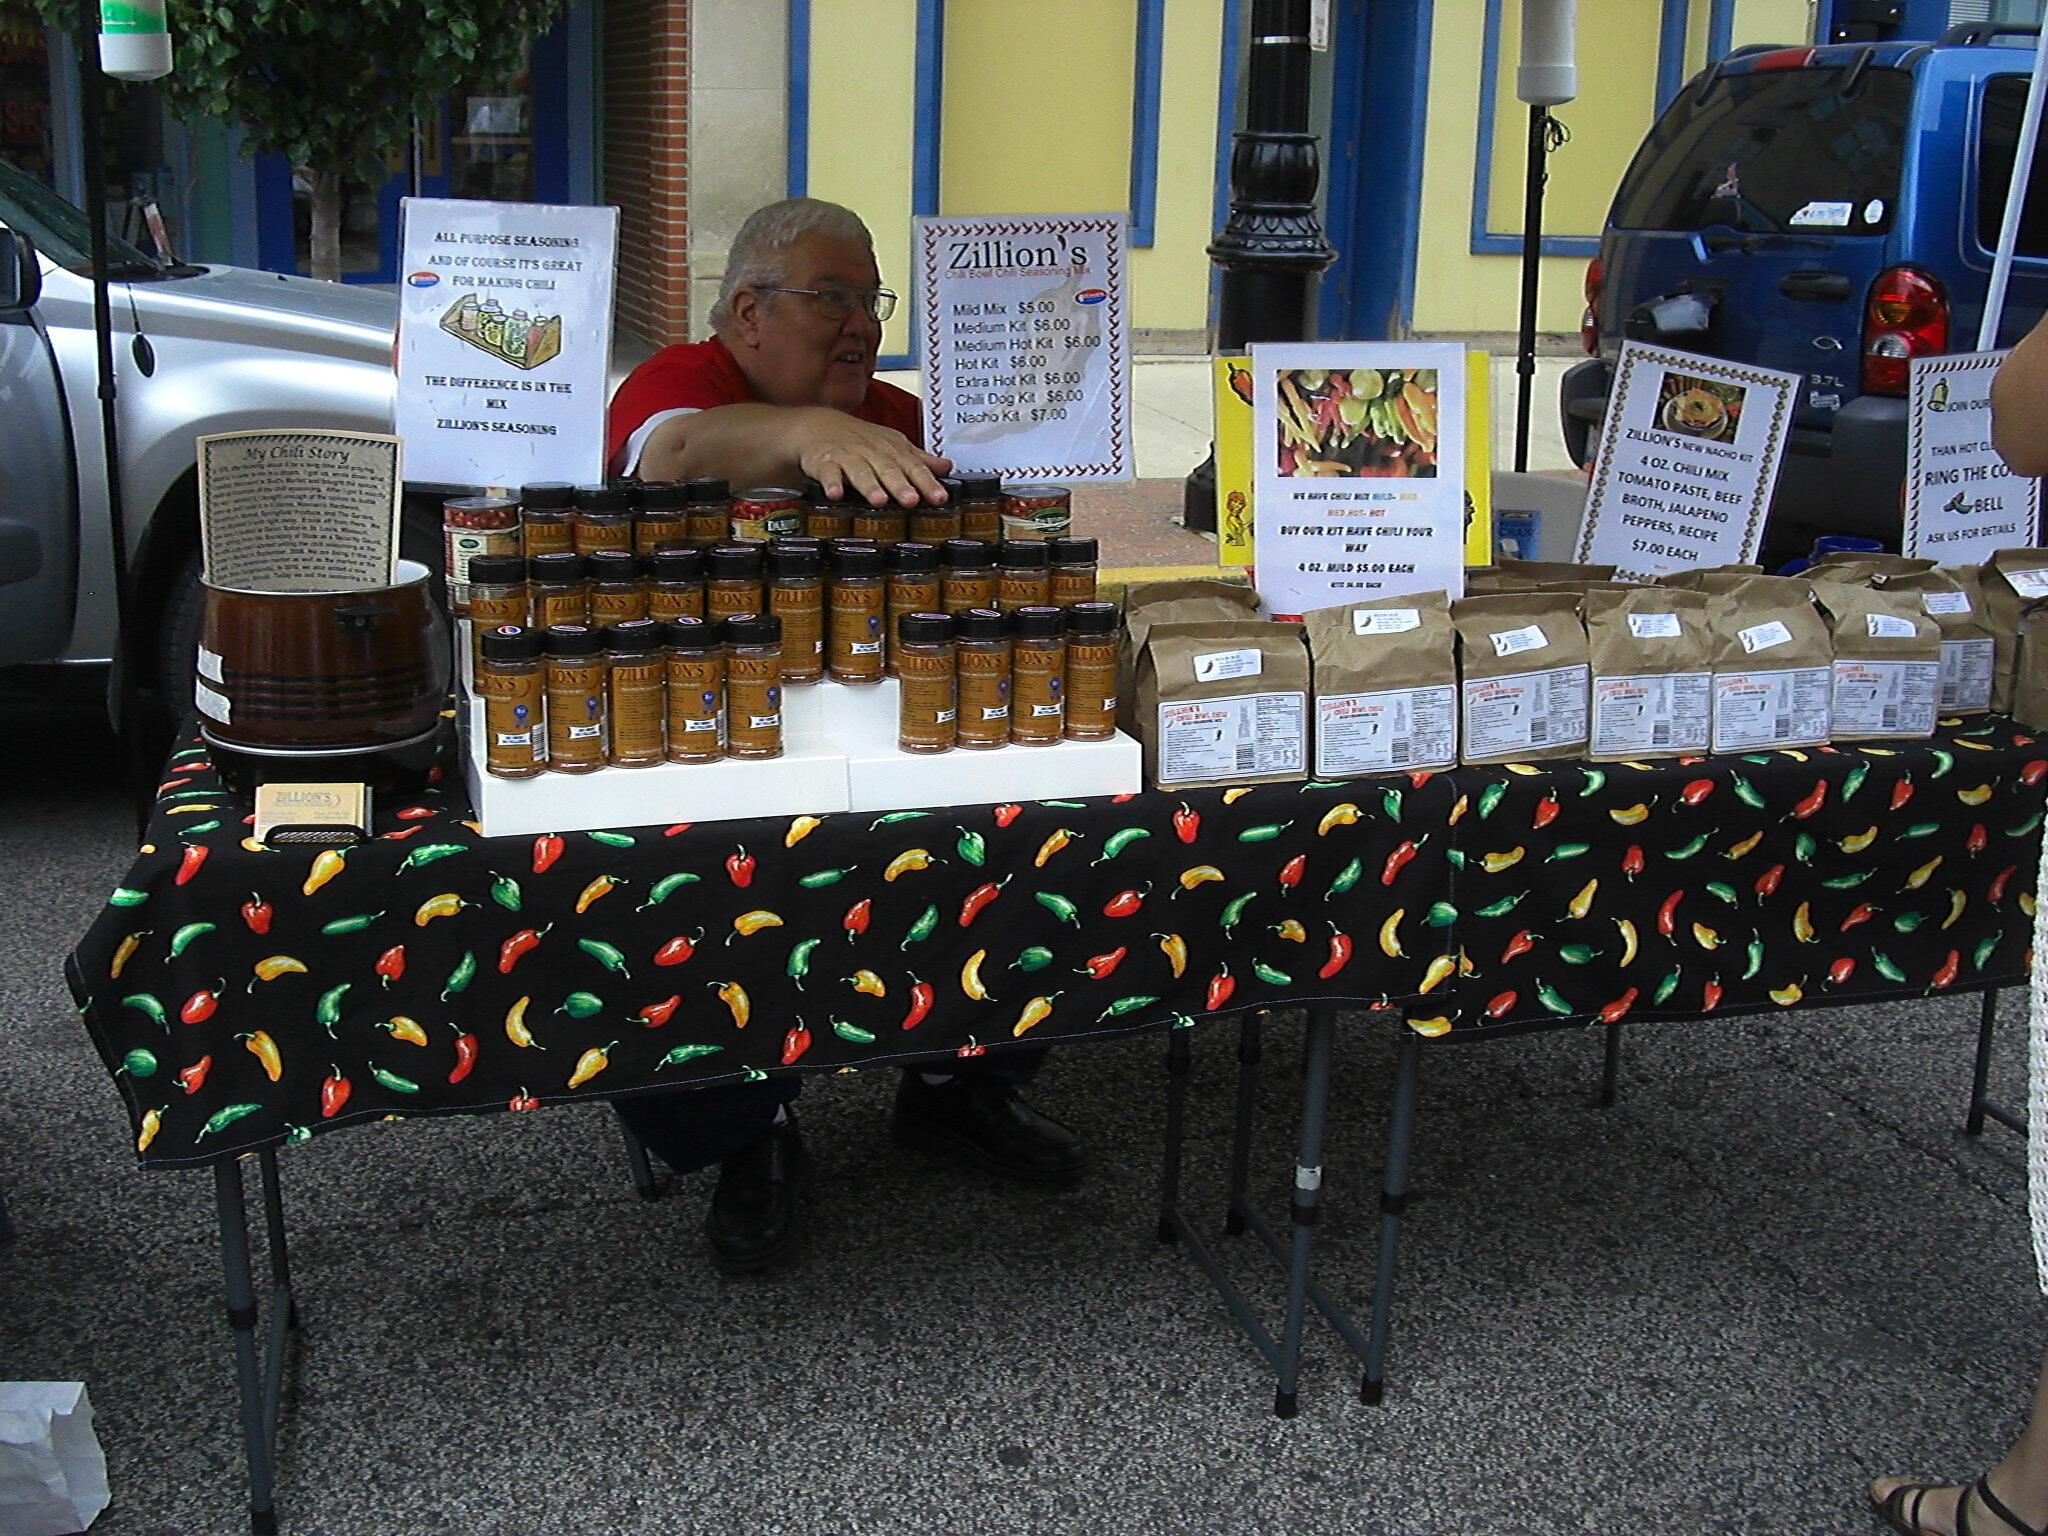 Zillion's Chili Seasoning Mix Old State Capitol Farmers Market